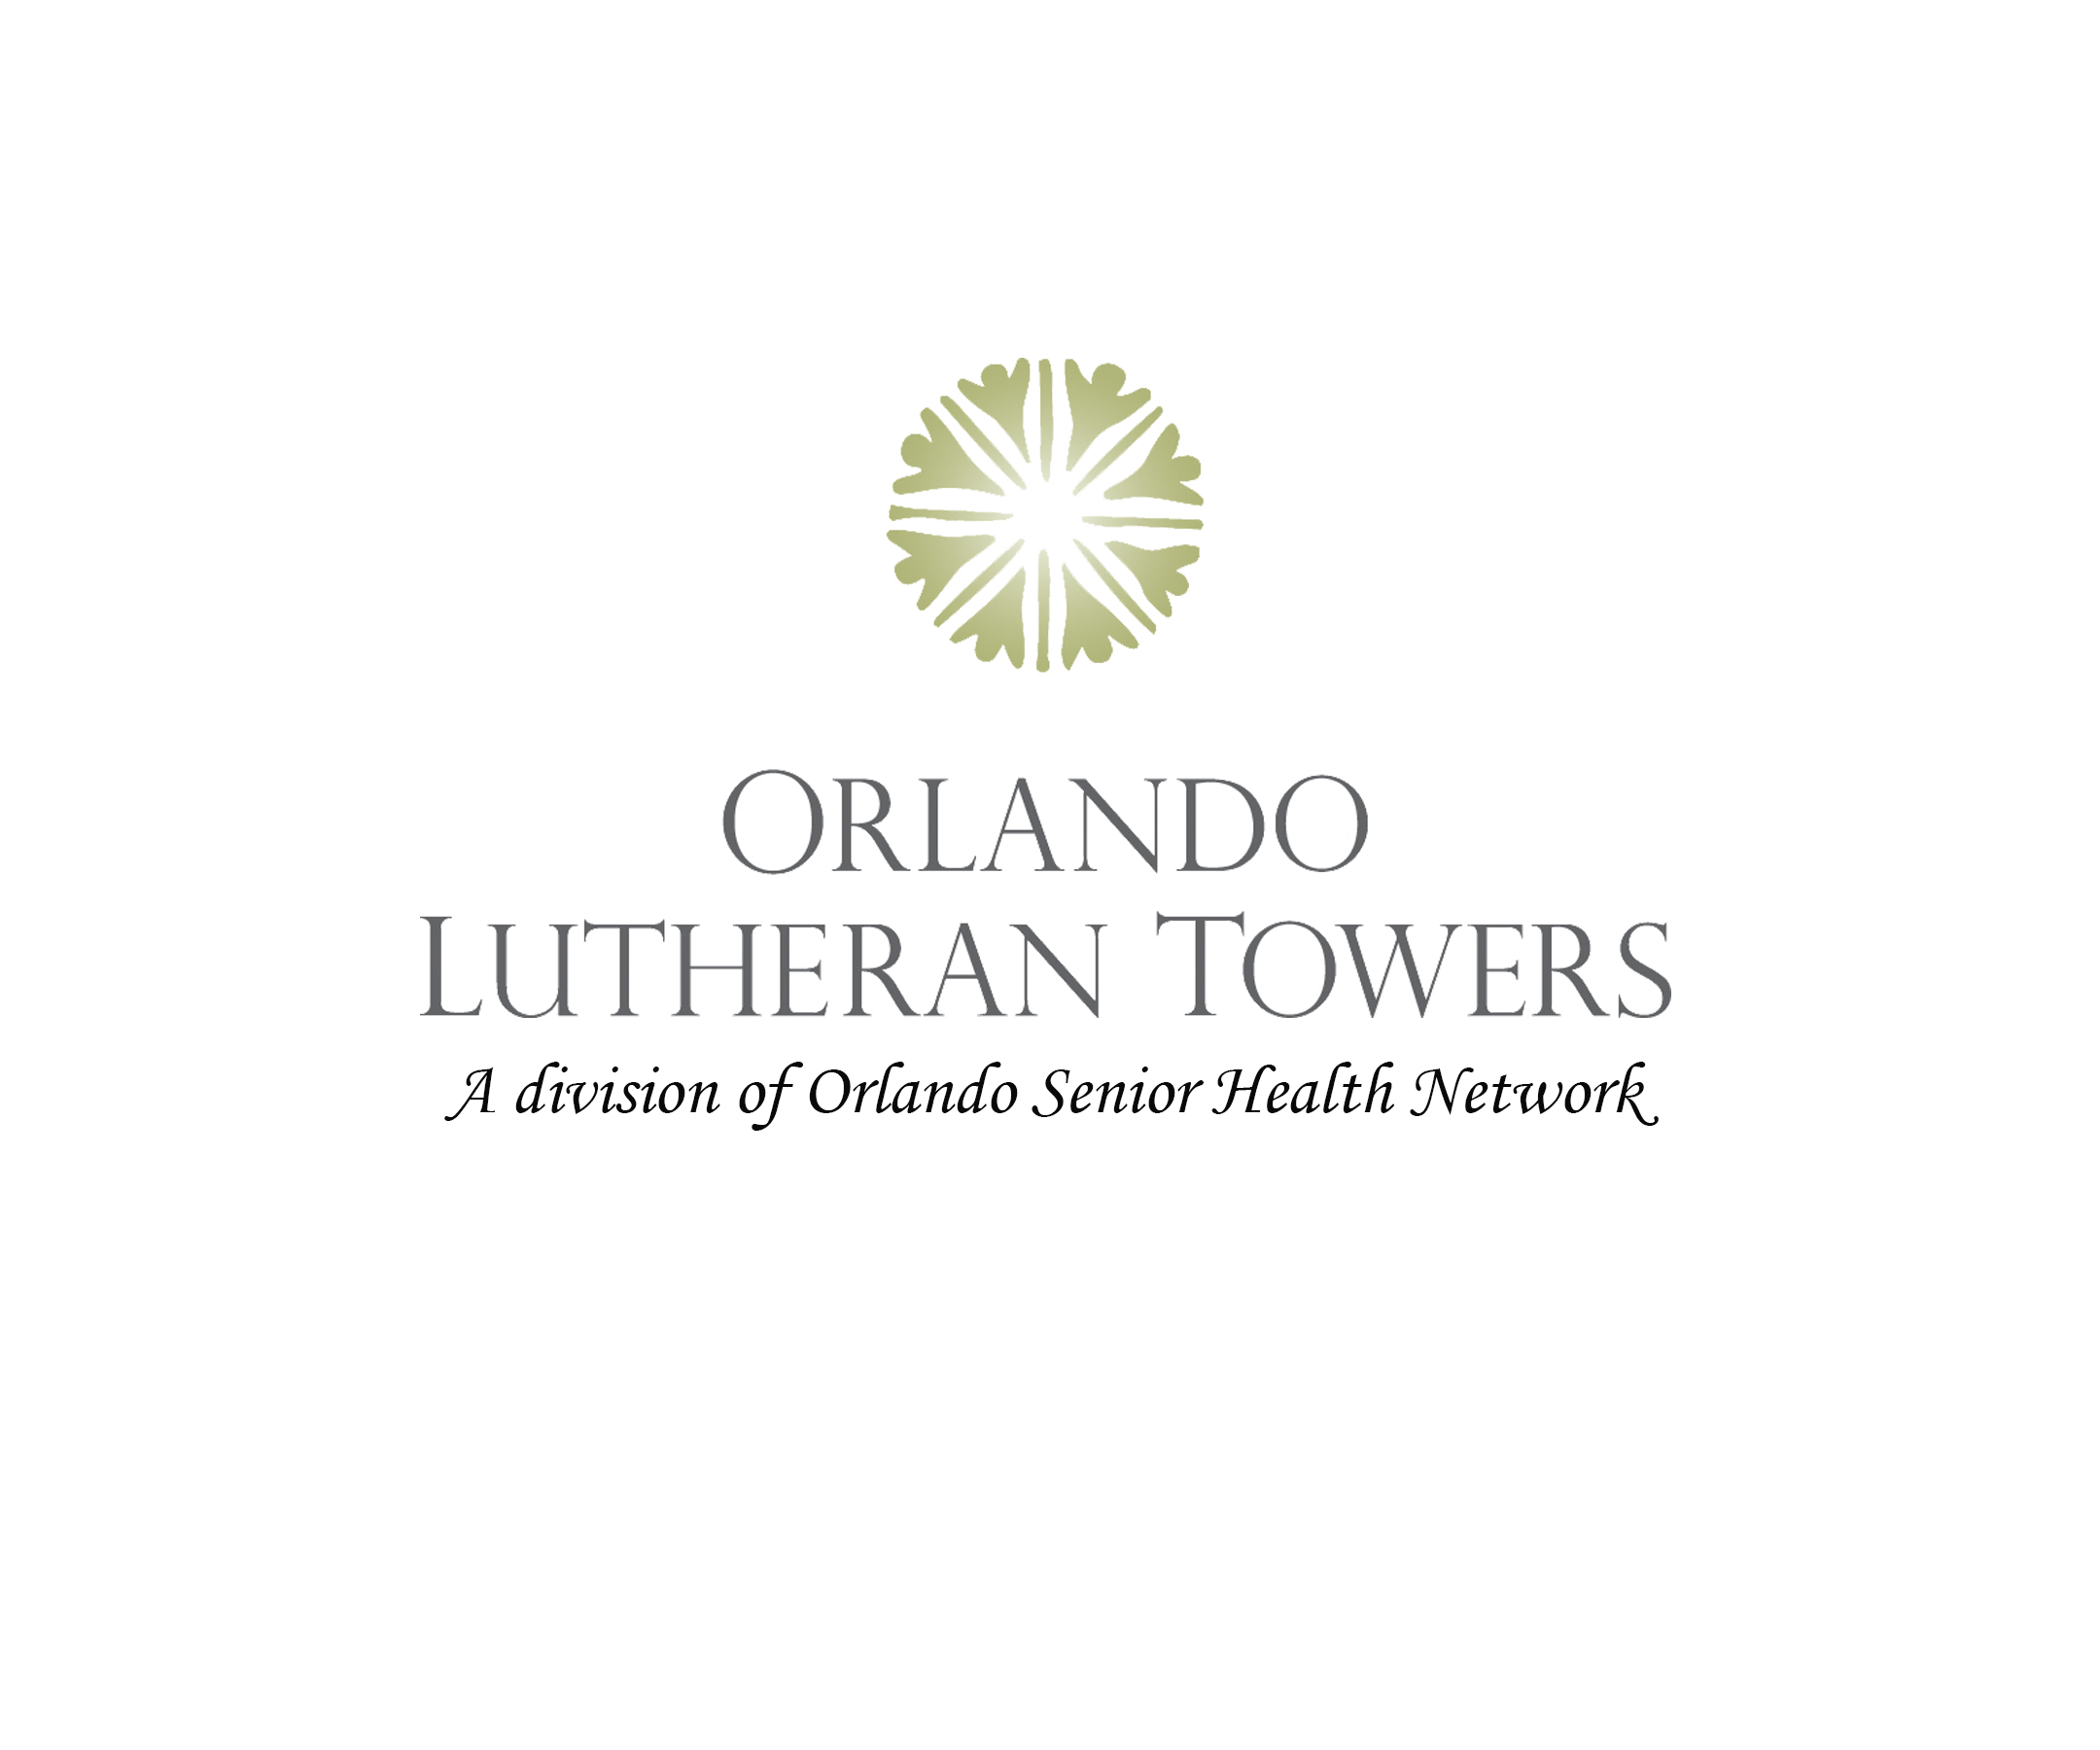 Orlando Lutheran Towers